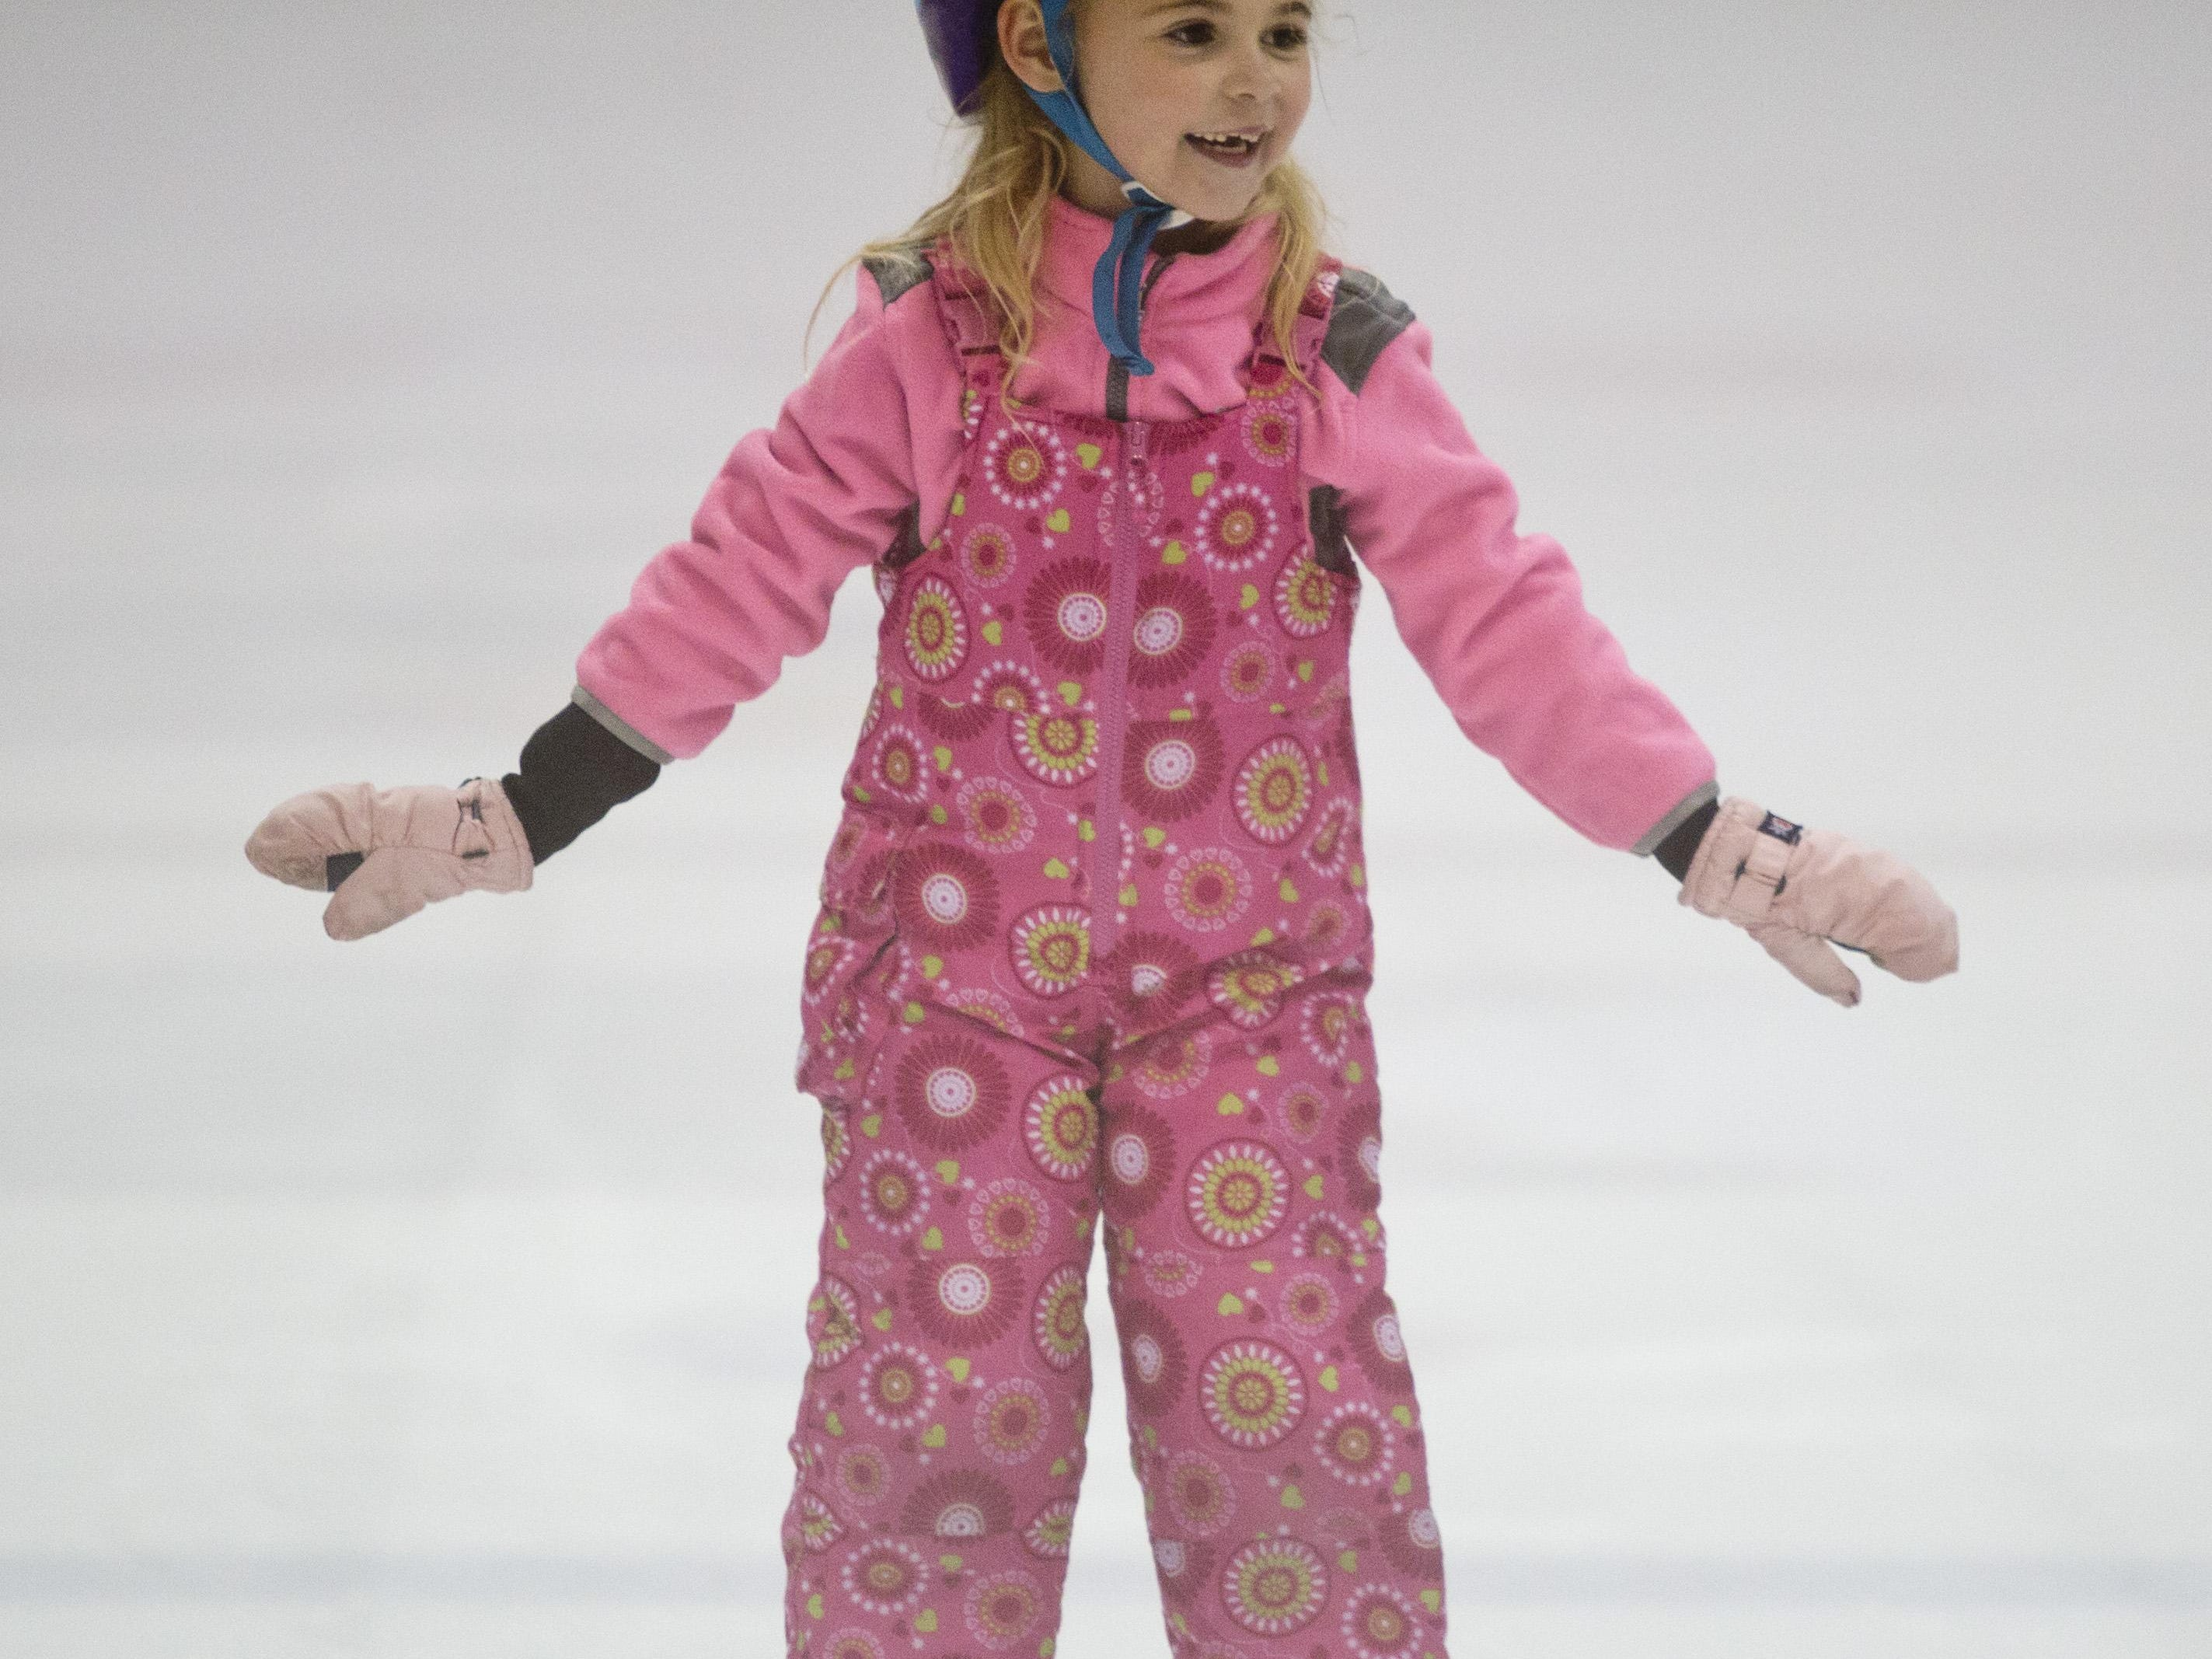 Tori Stein, 6, of Port Huron, skates during a learn to skate program Wednesday, October 7, 2015 at McMorran Arena.